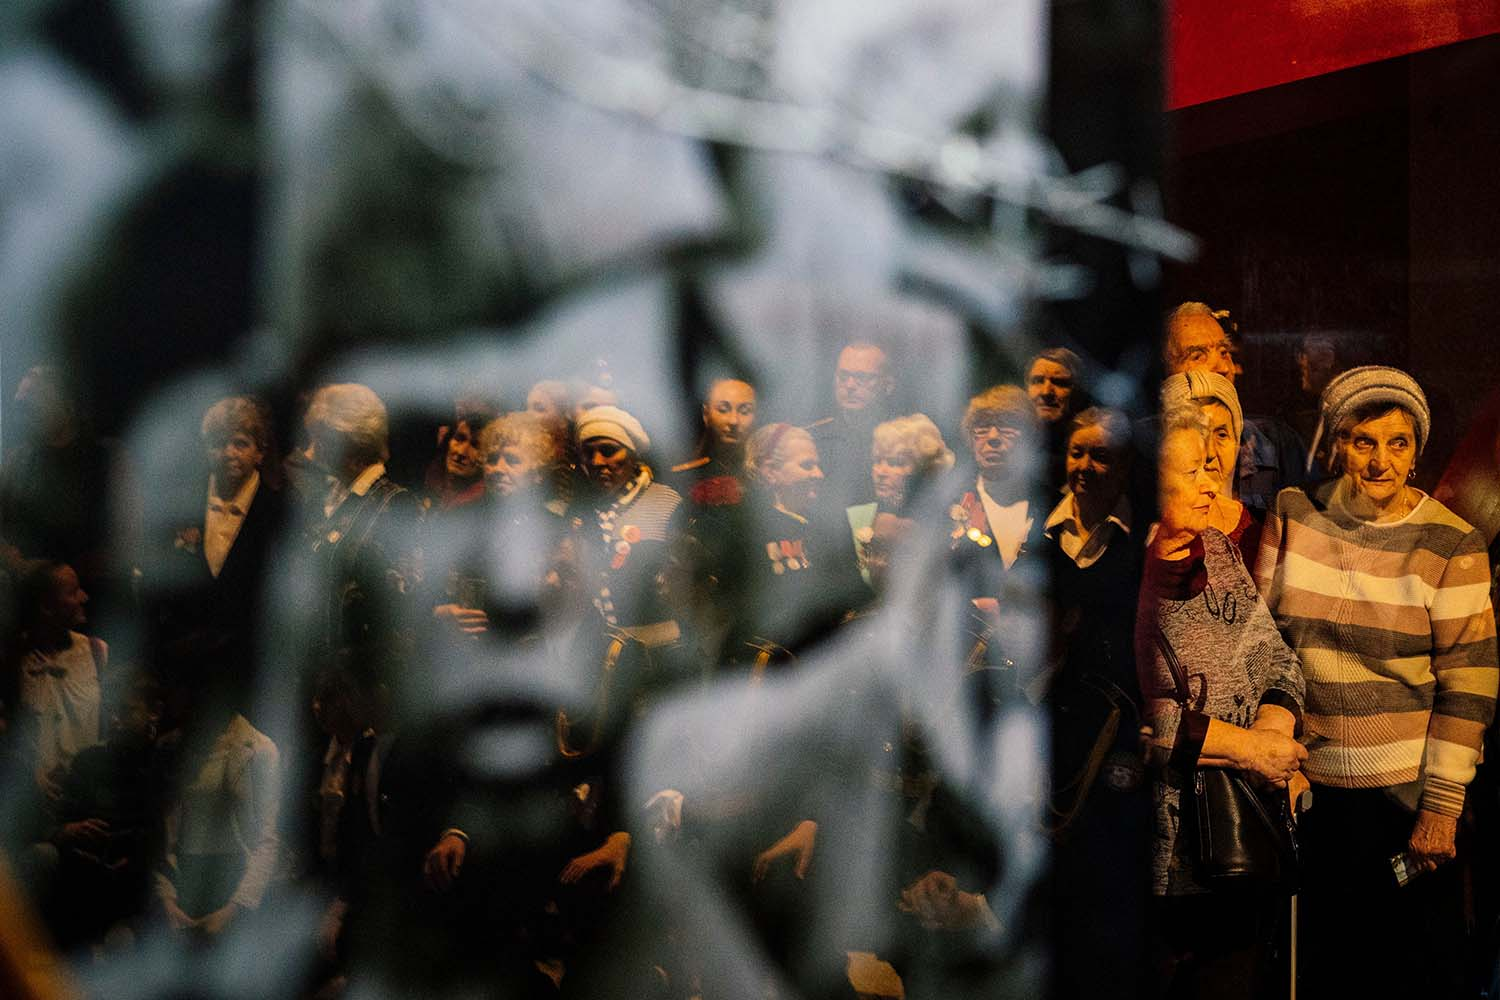 Veterans attend an event marking 75 years since the liberation of Auschwitz, the extermination camp where the Nazis killed more than 1 million Jews, at Moscow's Victory Museum on Jan. 28. DIMITAR DILKOFF/AFP via Getty Images